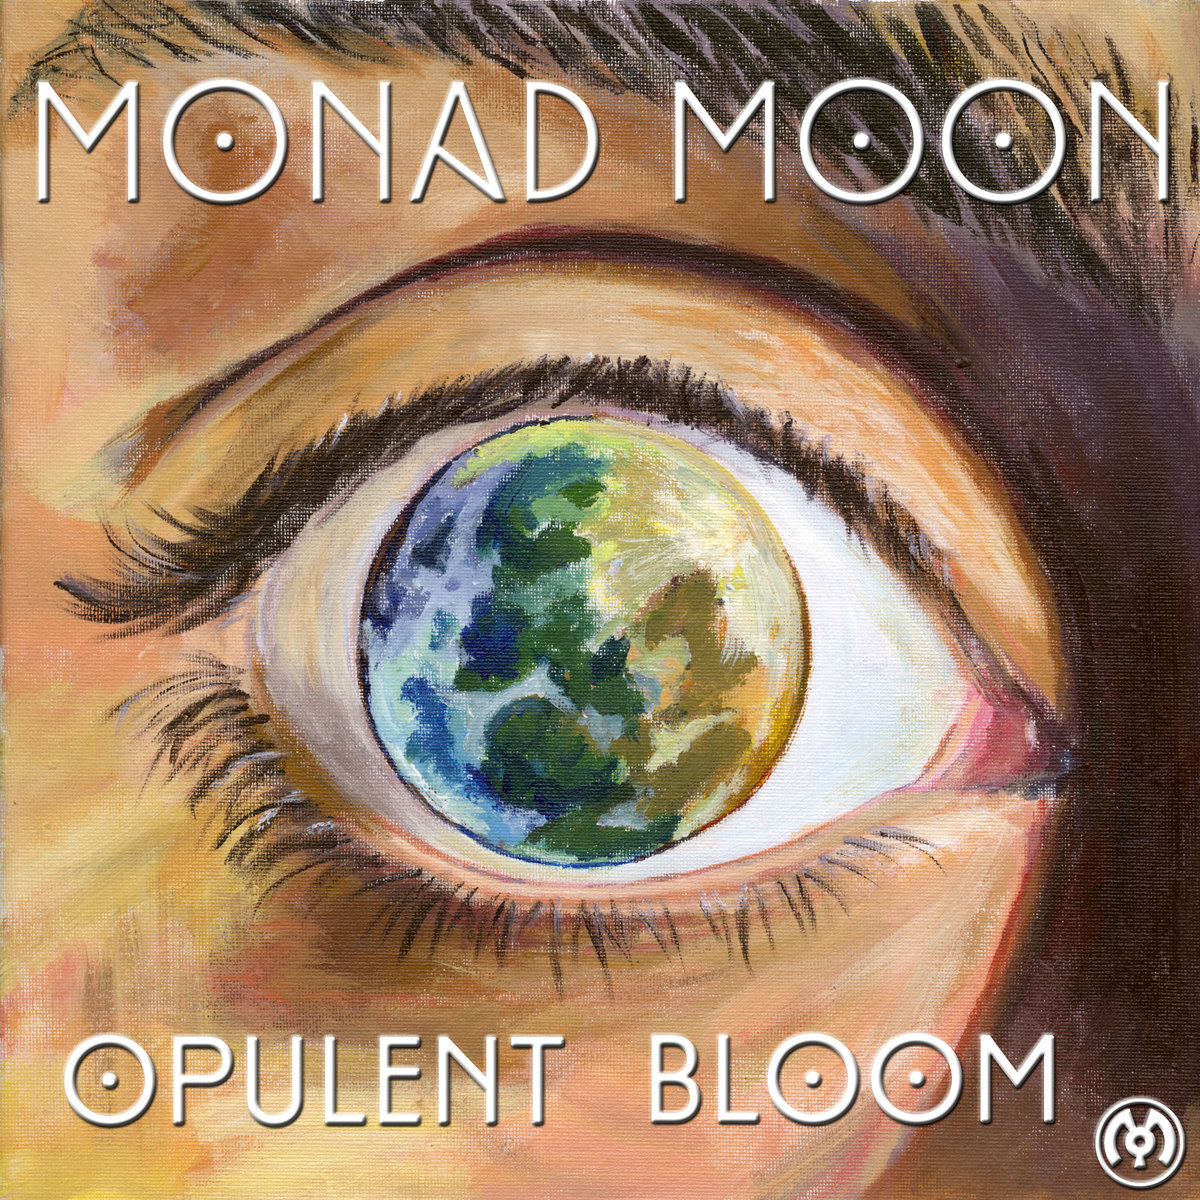 Monad Moon - The Bear And The Owl (Kermode Remix) @ 'Opulent Bloom' album (electronic, dubstep)